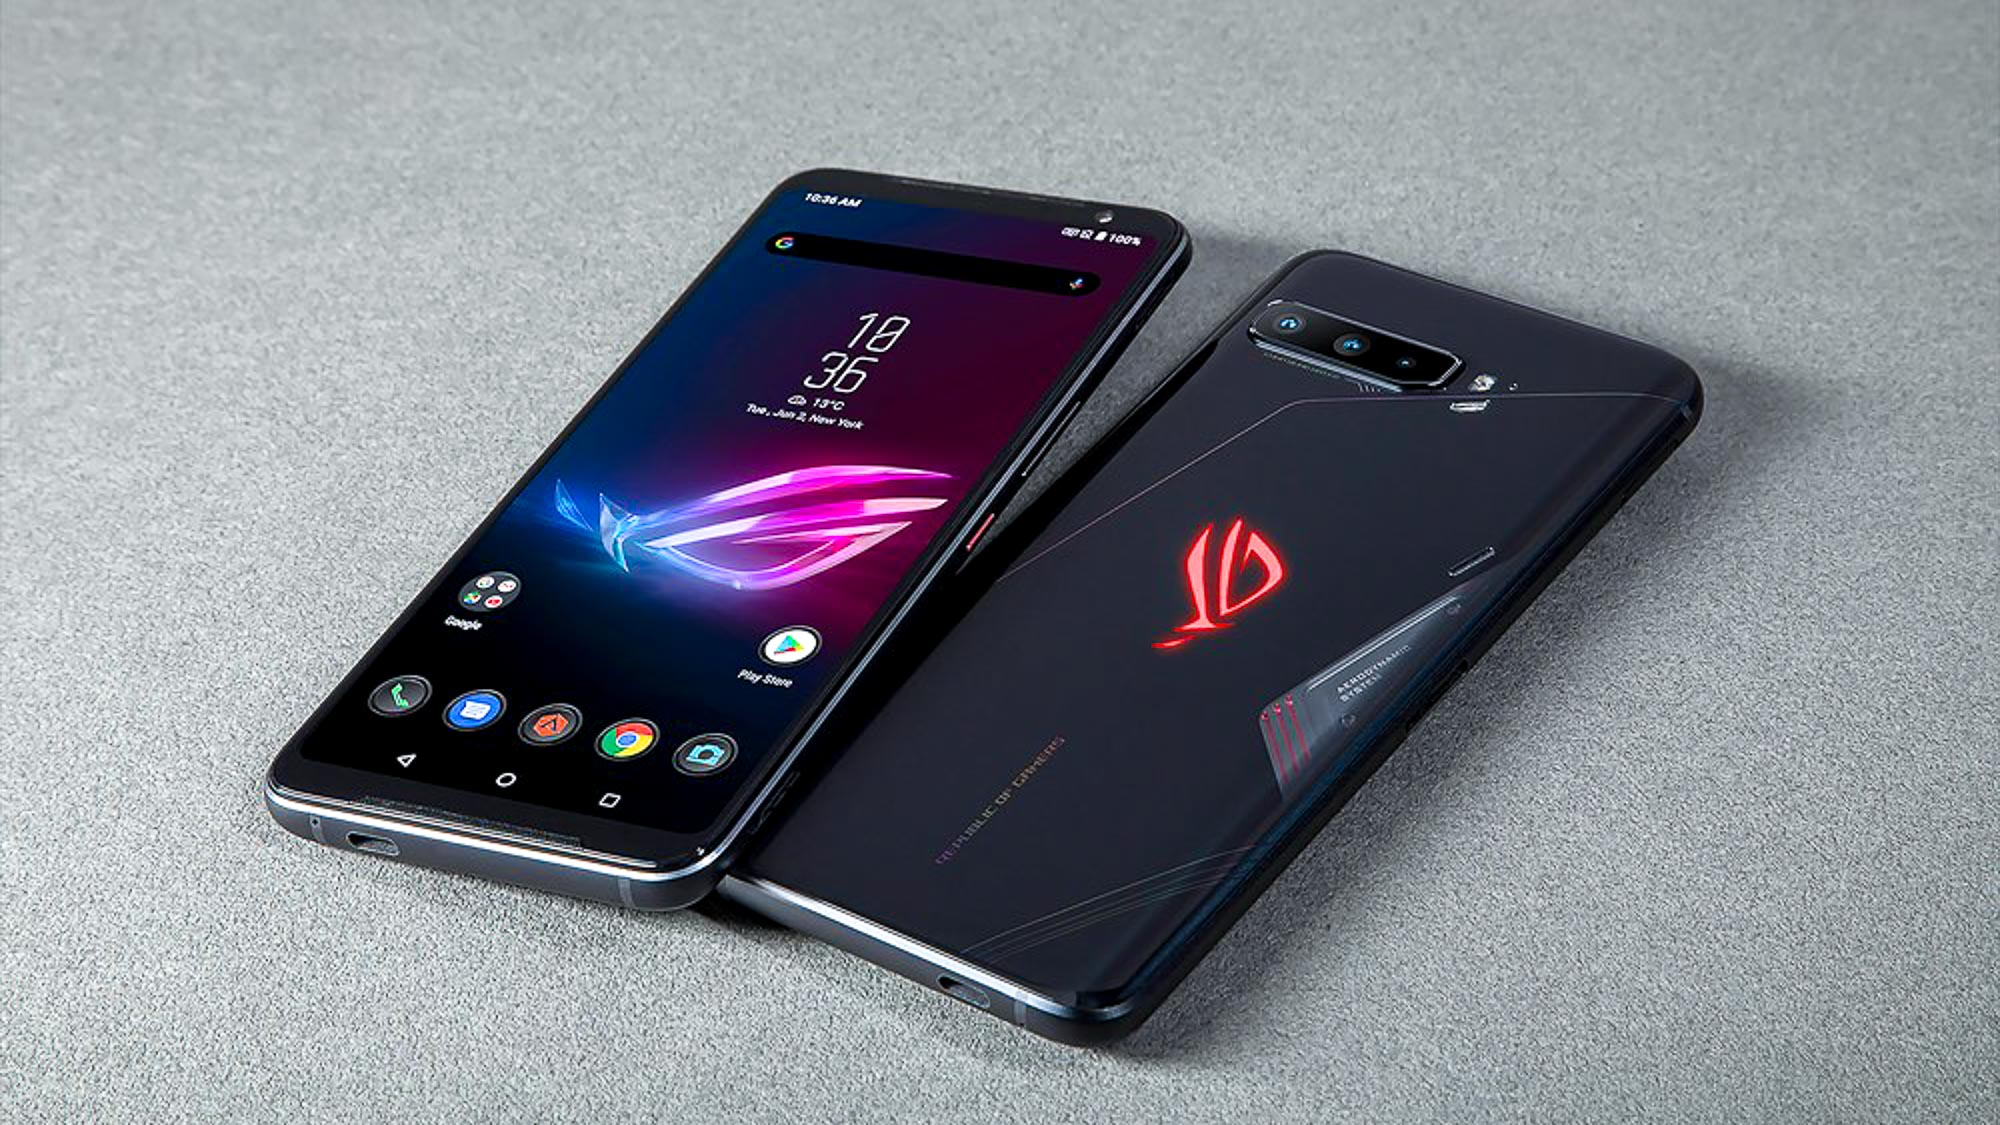 Asus ROG phone 5 ultimate price in pakistan